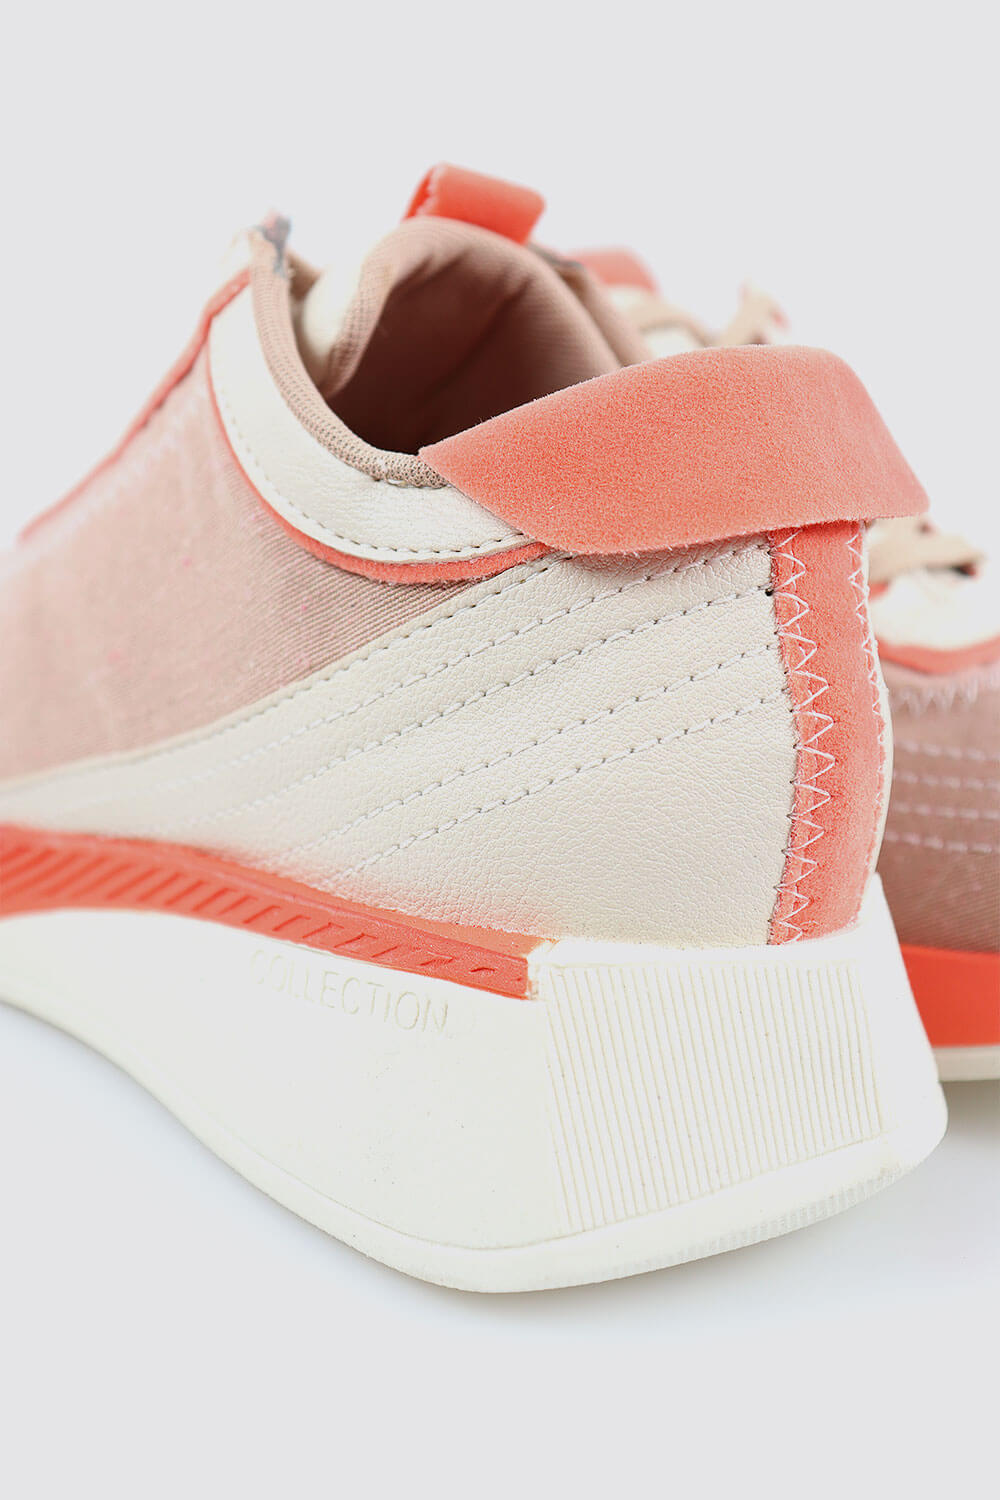 Tênis Chiquiteira Casual Lona Nude/Branco/Coral TLH